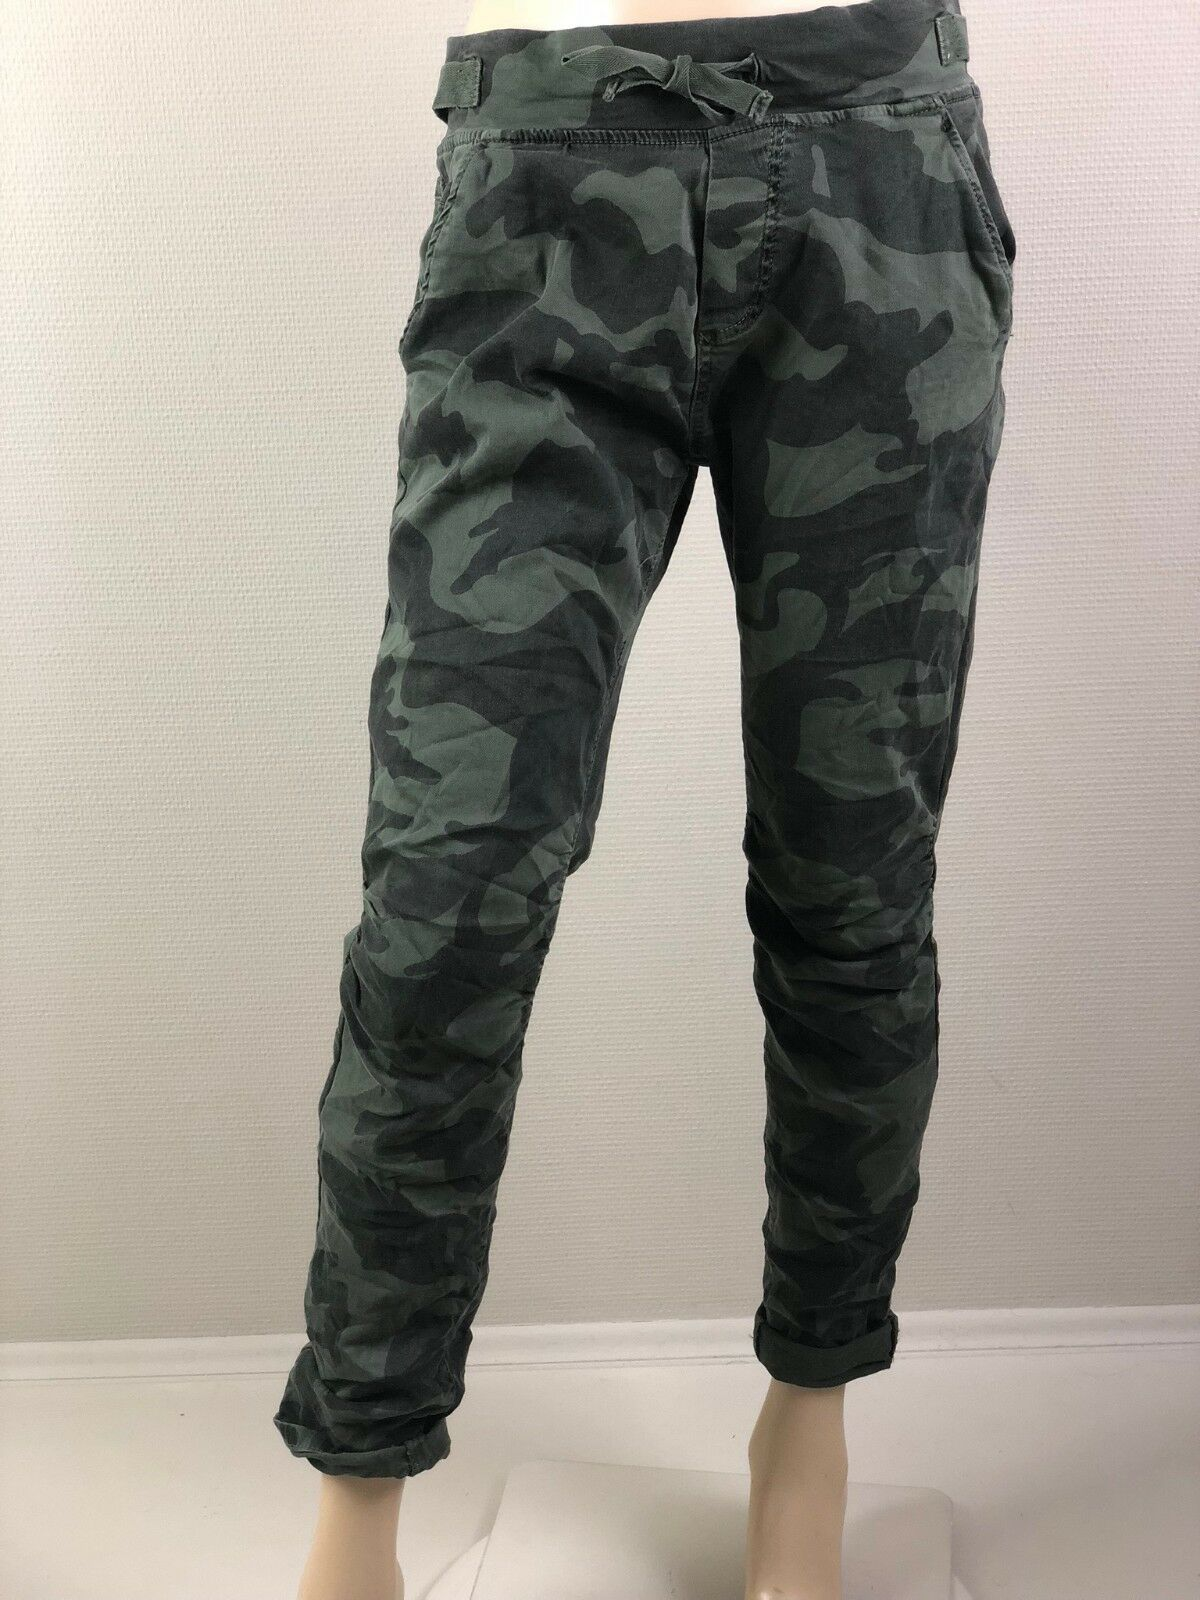 Melly&Co dunkles camouflage Jogging-Style-Jeans Hose wow Jogpant XS S M L XL